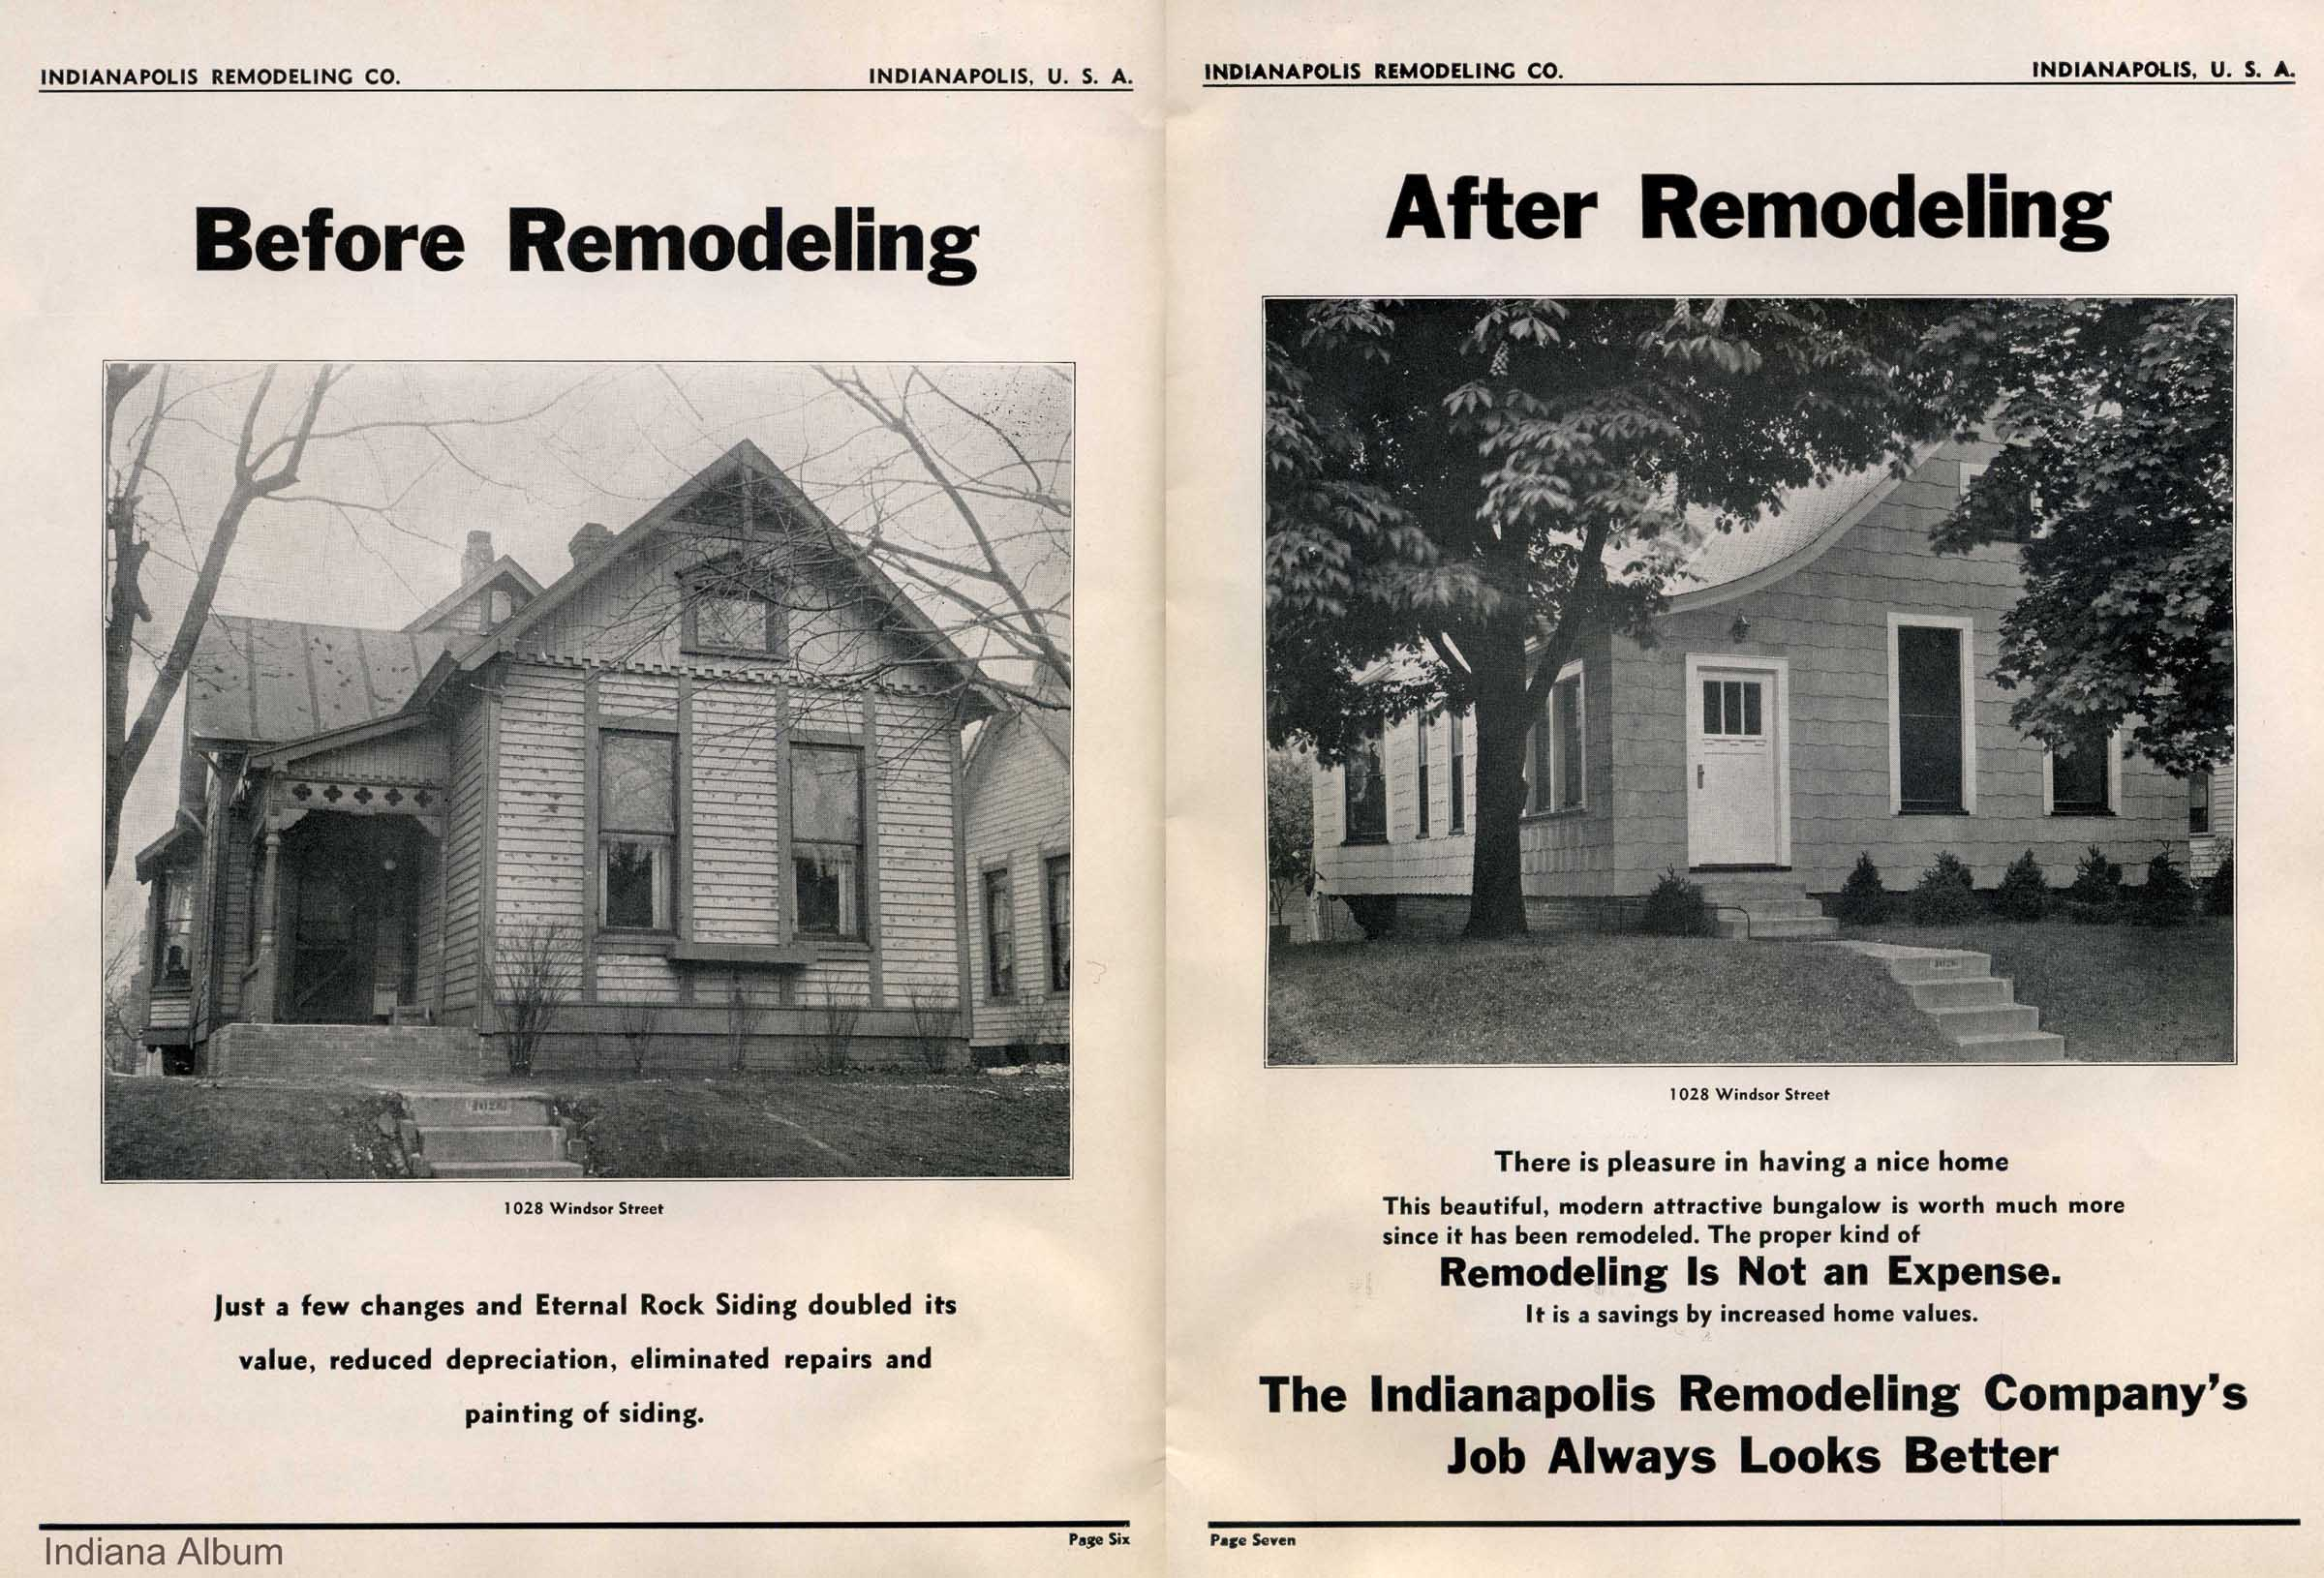 Then and Now: Indianapolis Remodeling Company, 1422 N. Kealing Avenue and 1028 Windsor Street